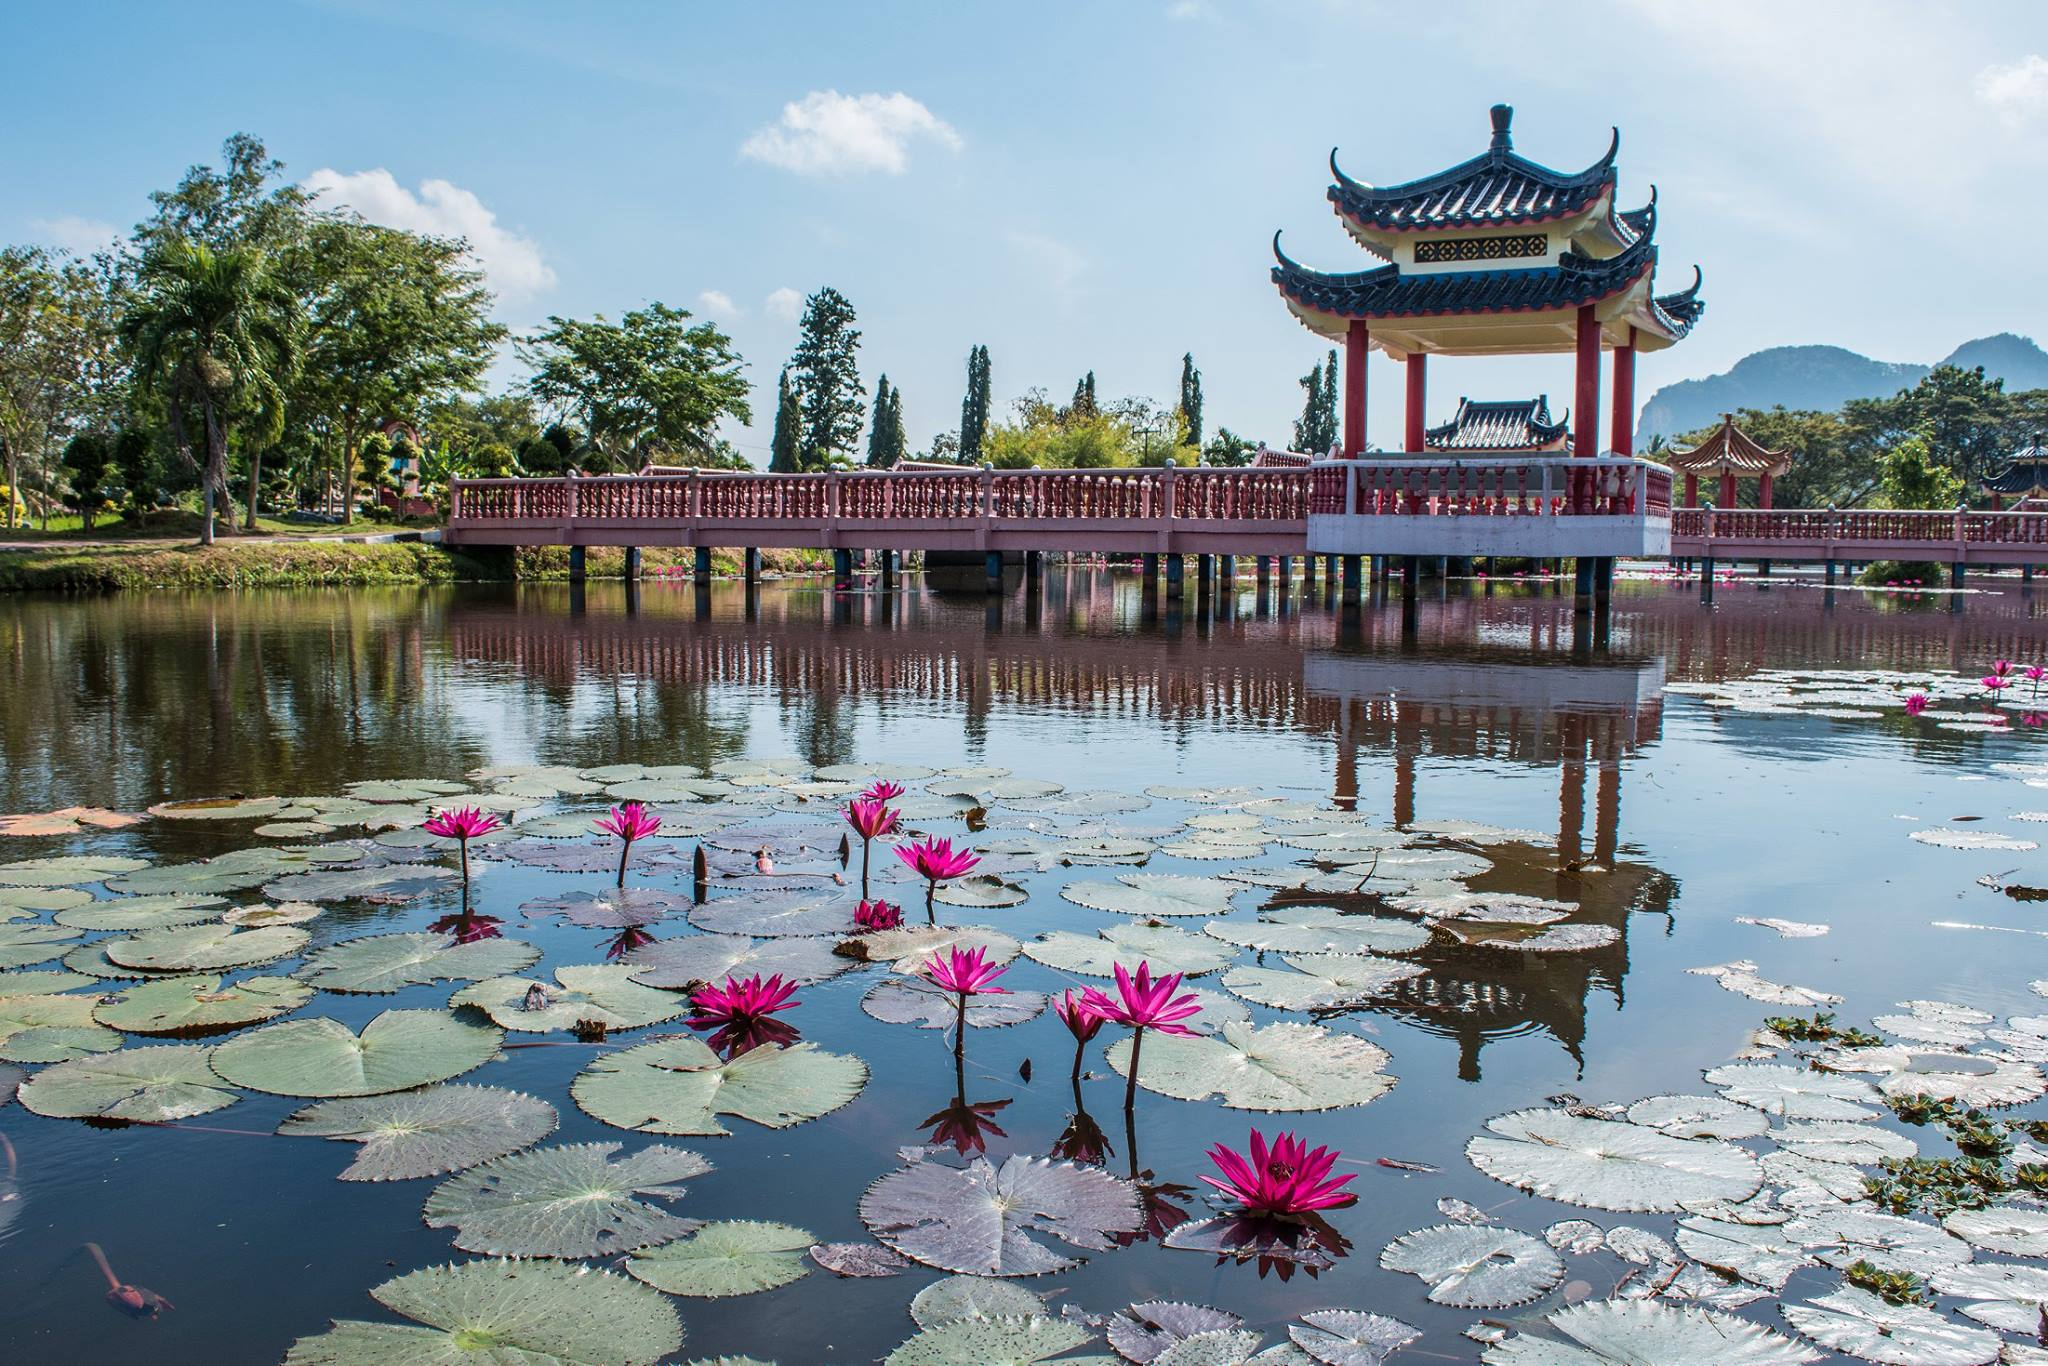 Recreational Park as one of the places to visit in Perlis